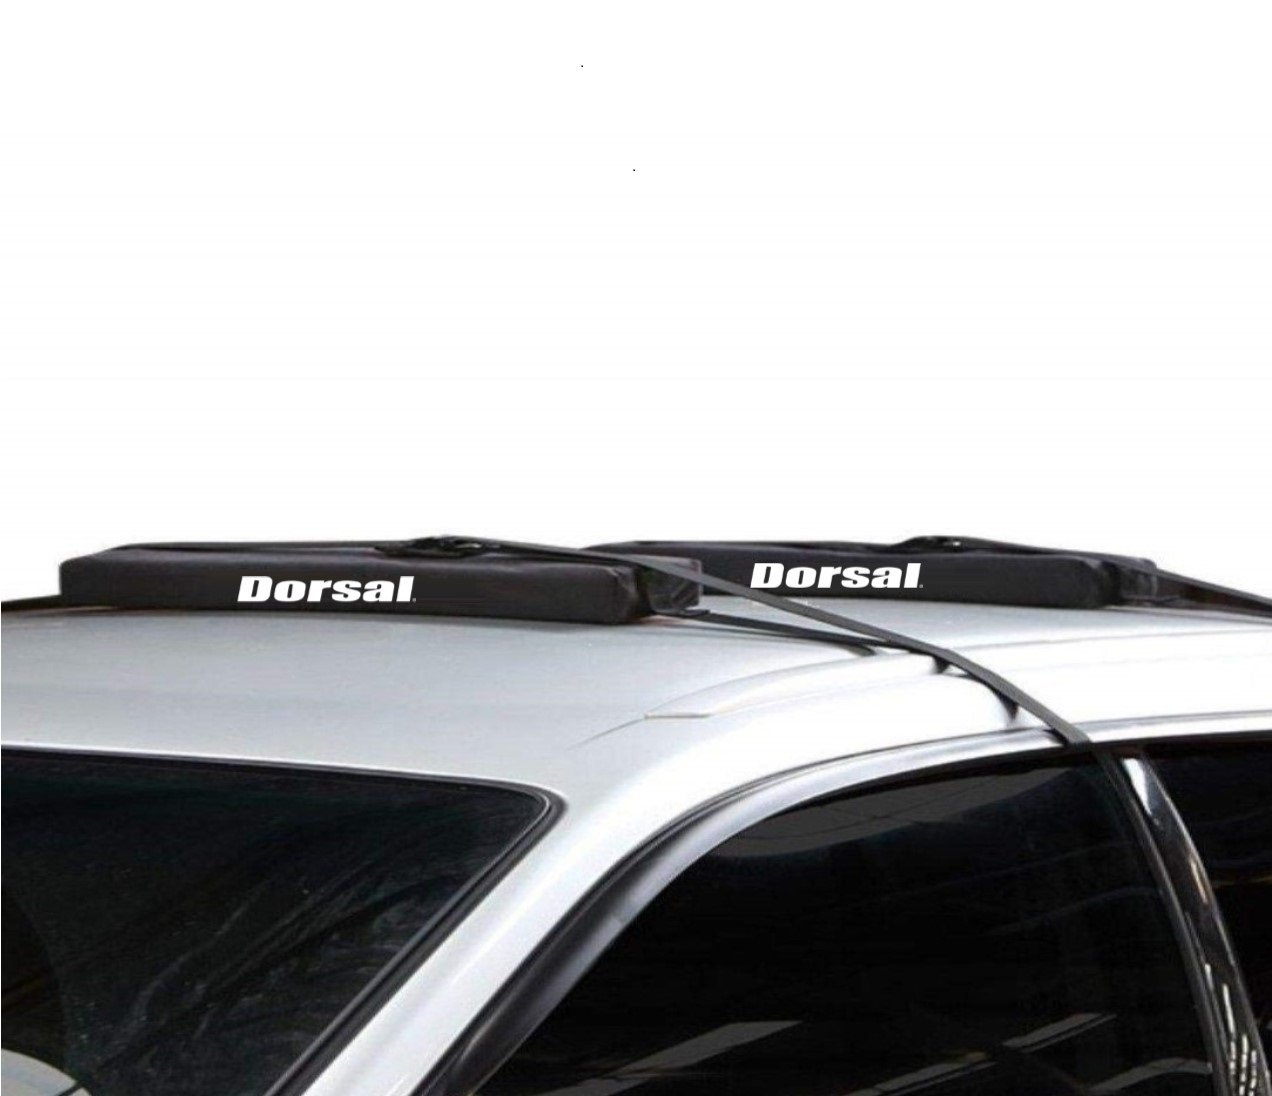 LONG for Kayaks SUP Dorsal Wrap-Rax Deluxe Surfboard Longboard Soft Rack Pads Straps 28 Inch